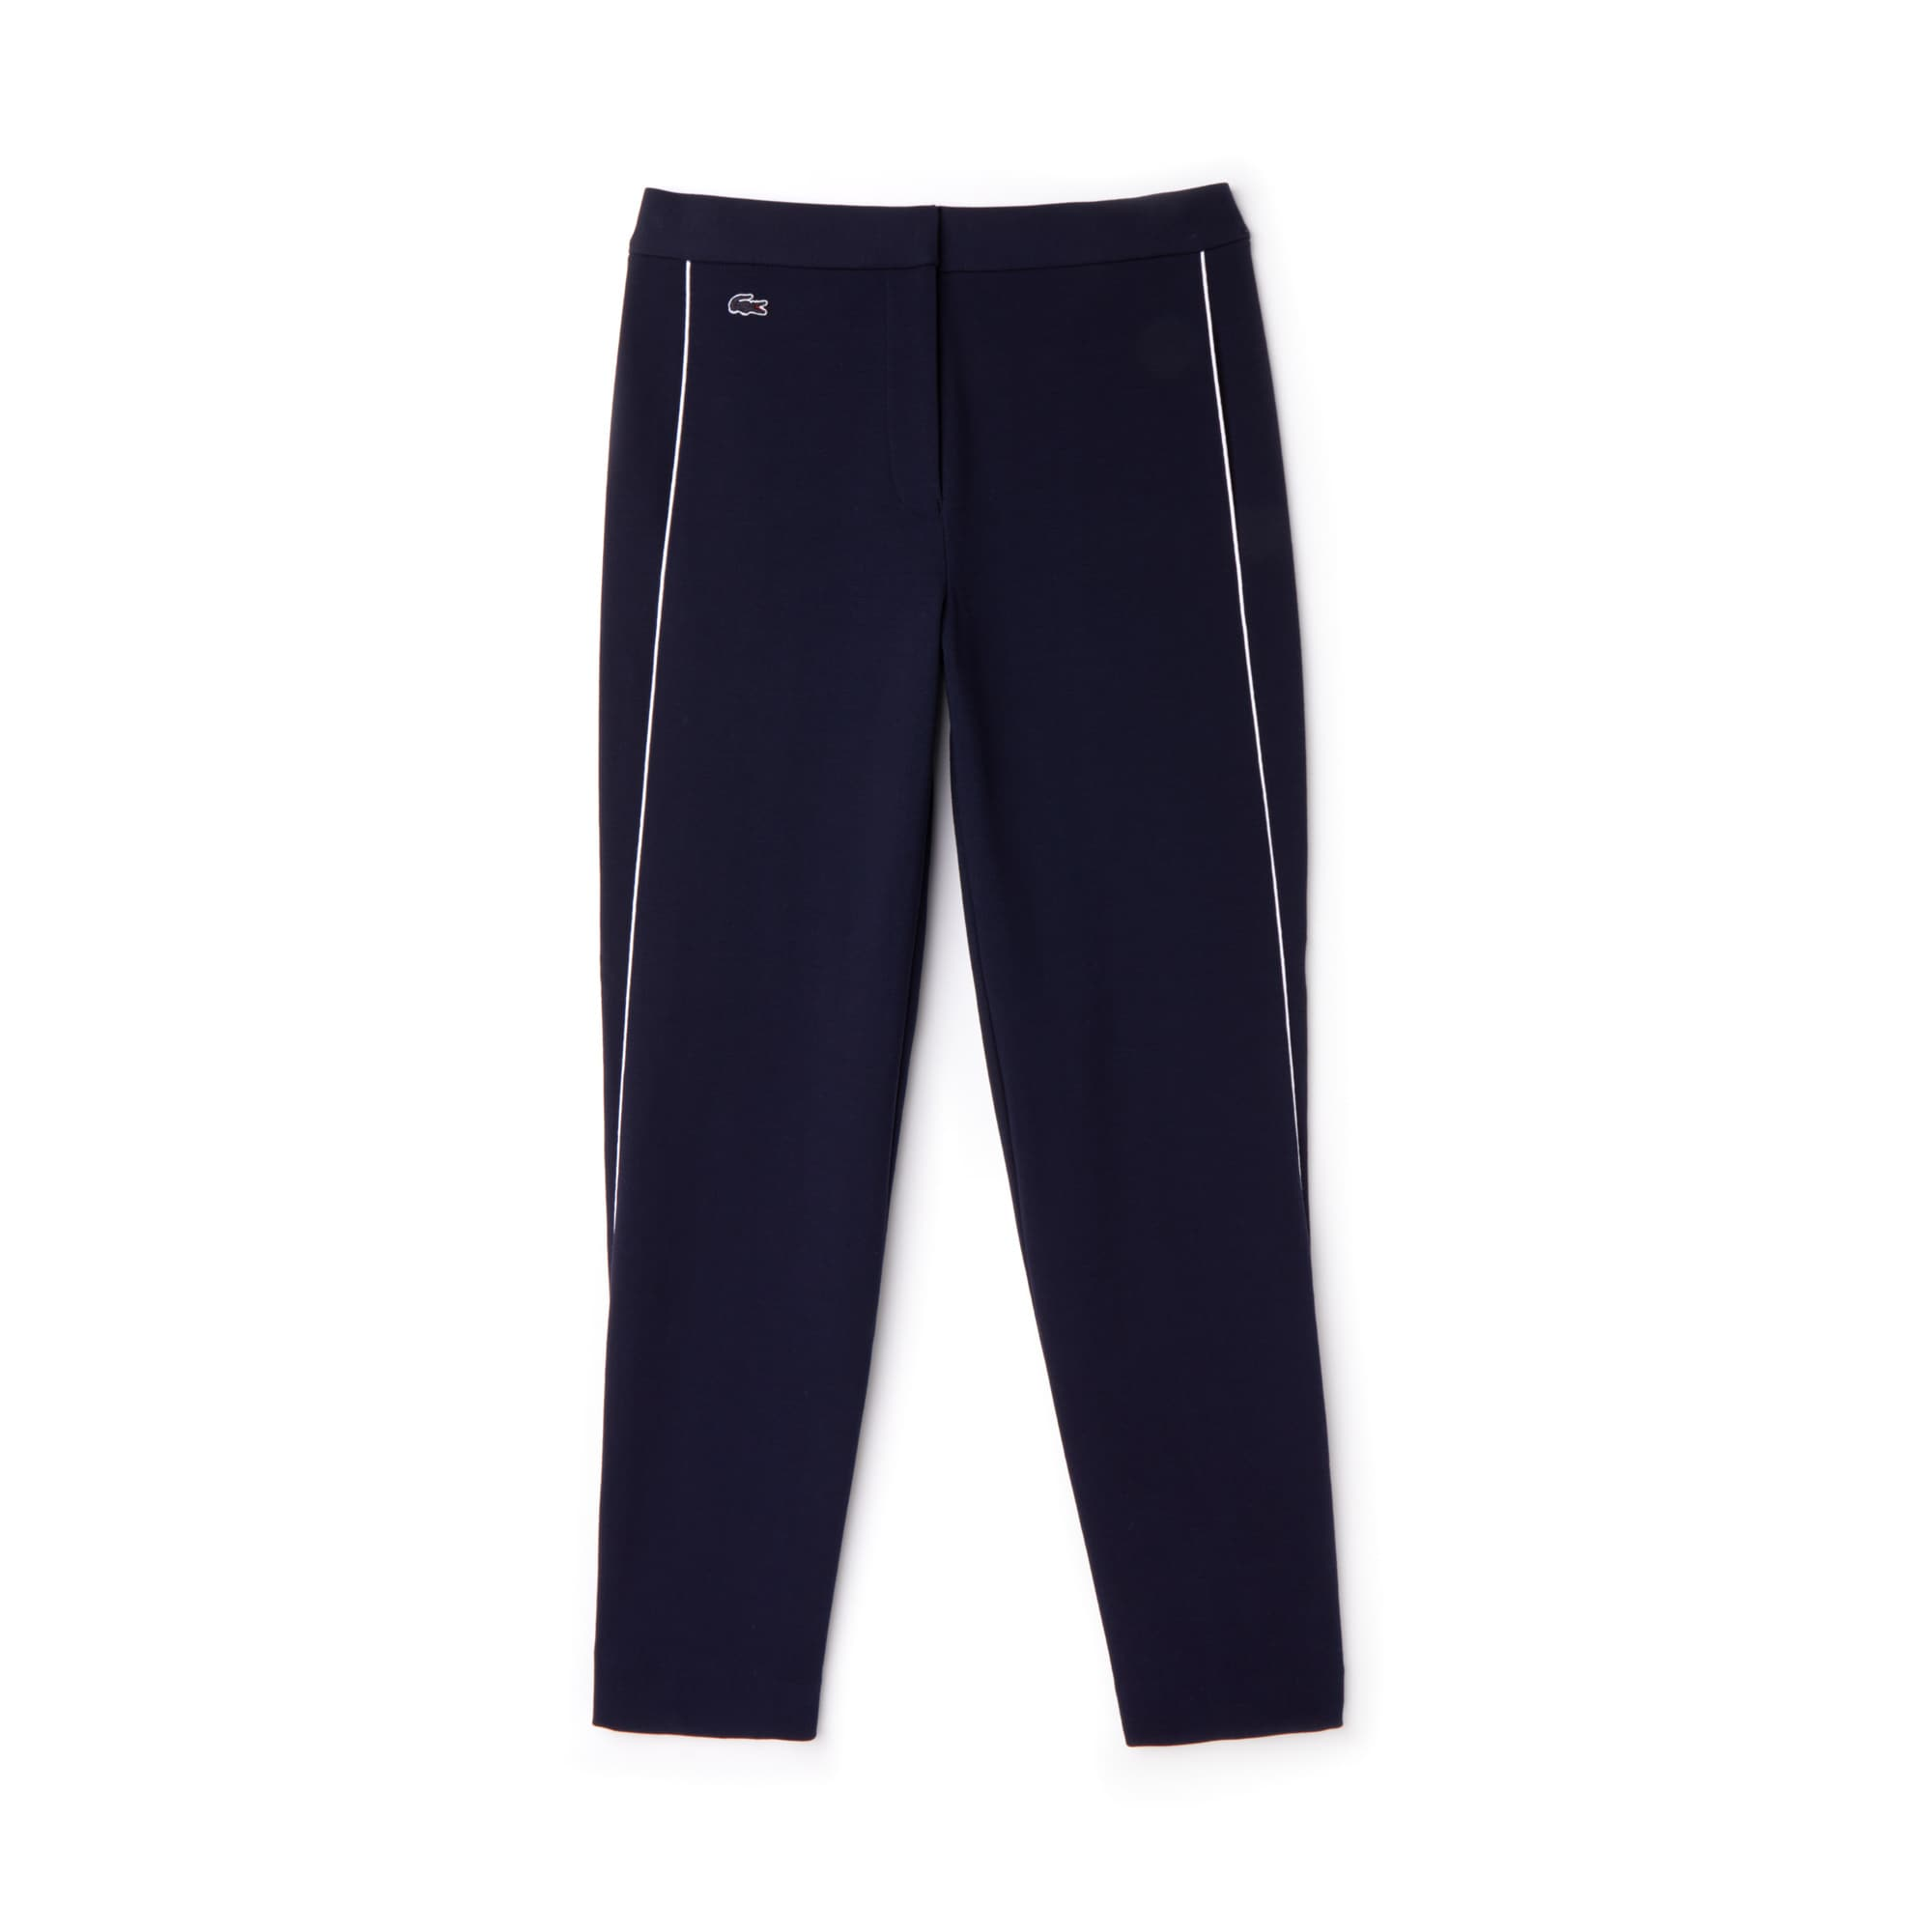 Pantalon carotte en crêpe interlock de coton avec piping